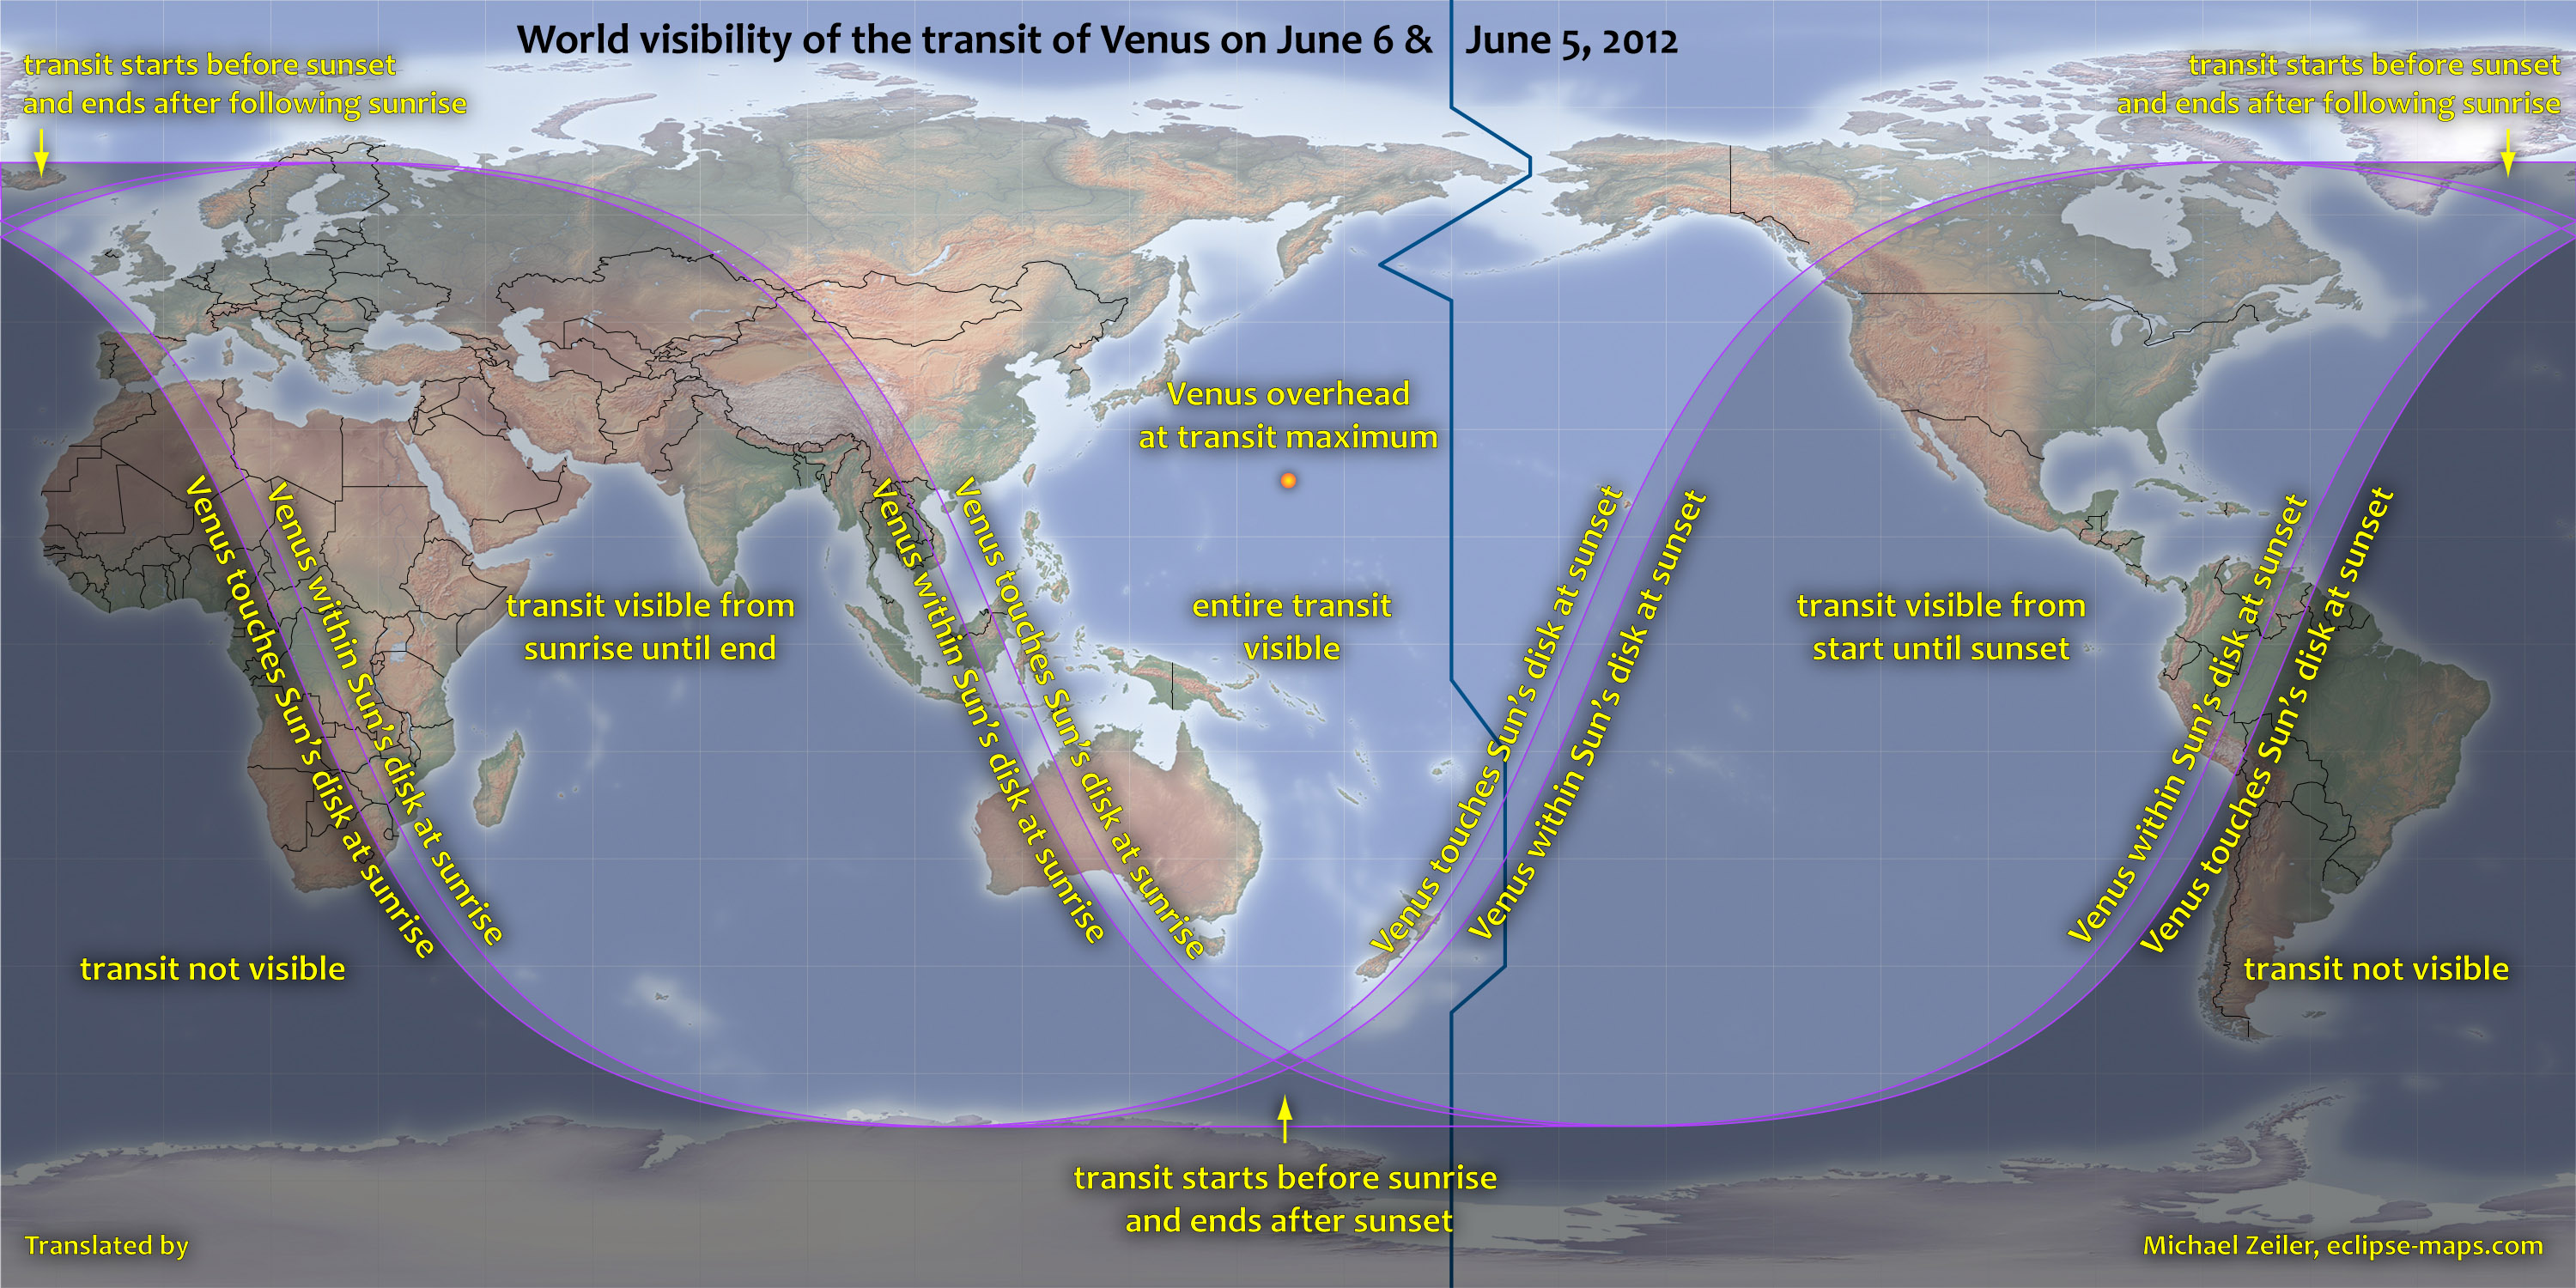 ESA Science & Technology: Venus transit visibility map on wisconsin voting map, wisconsin election map, olympics map, eclipse map, nasa map, mars map, astronomy map,